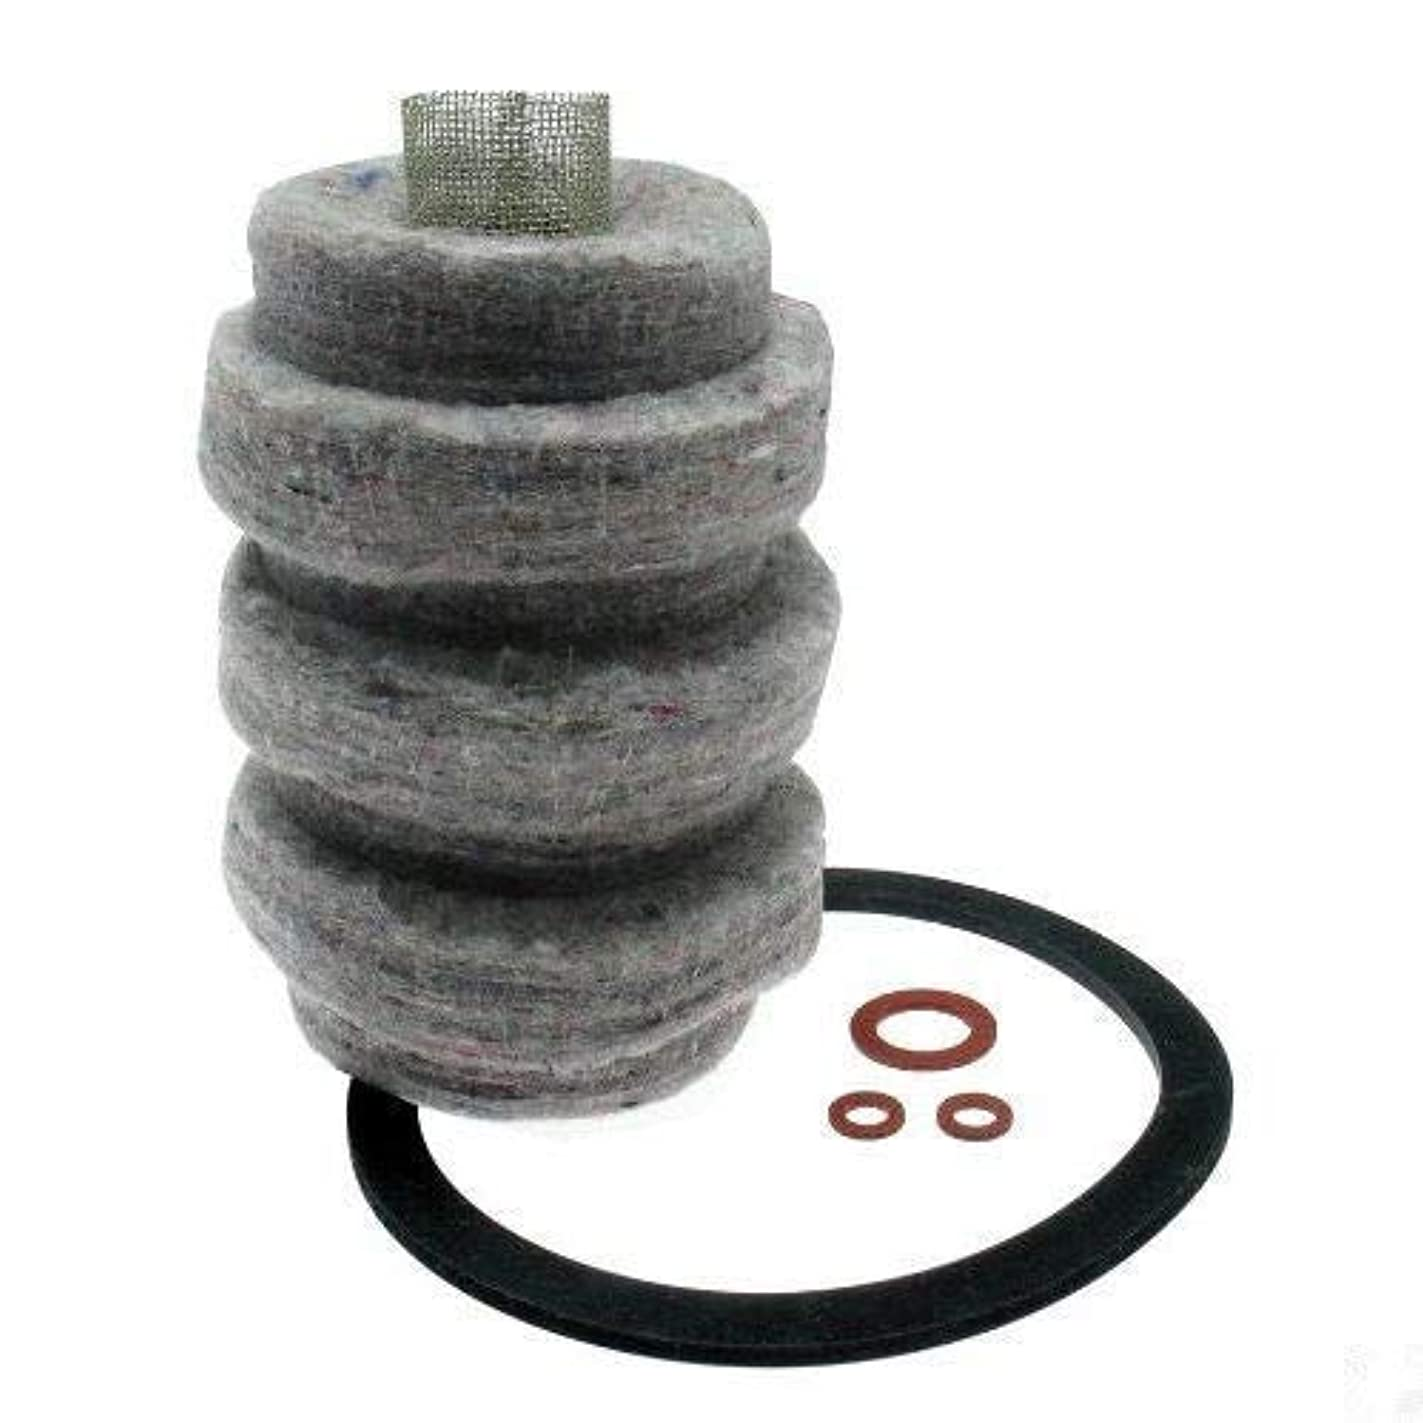 1A-30 FILTER ELEMENT REFILL For 1A-25A and 1A25B Filters Unifilter #88 (For Housing 77)